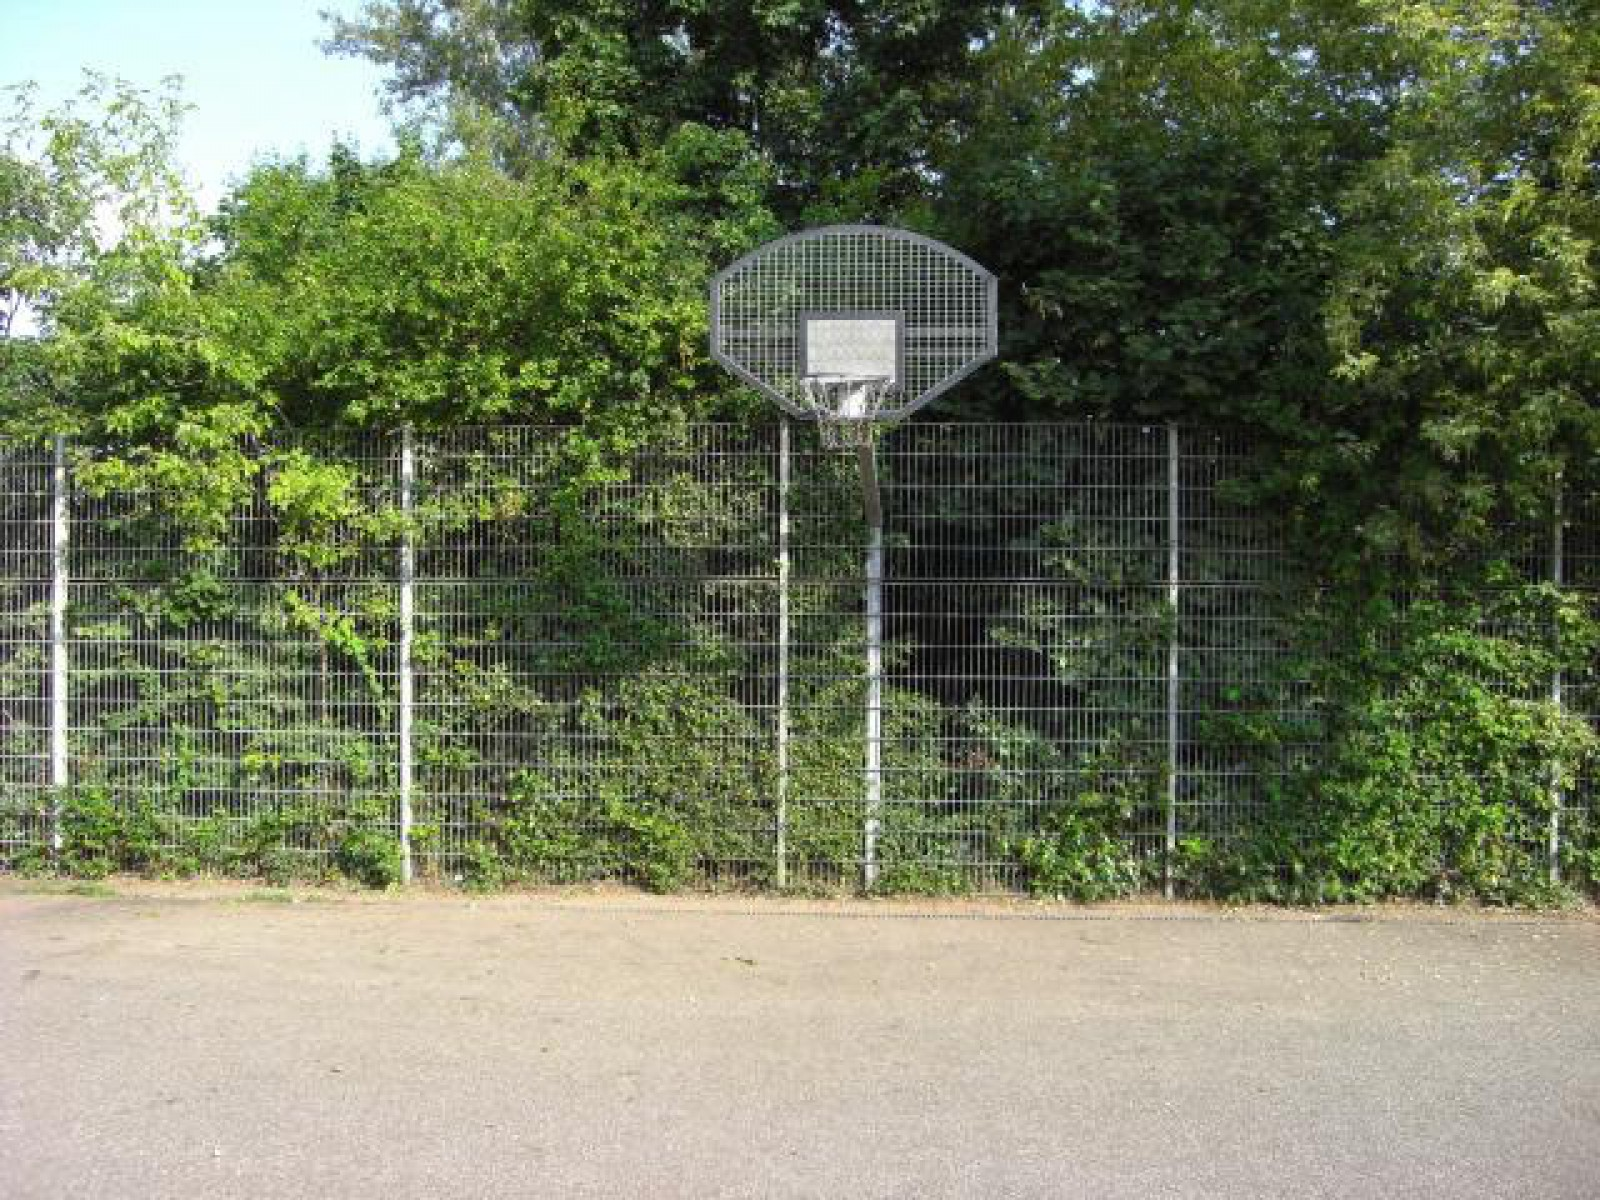 KDS Court, Mannheim, Germany